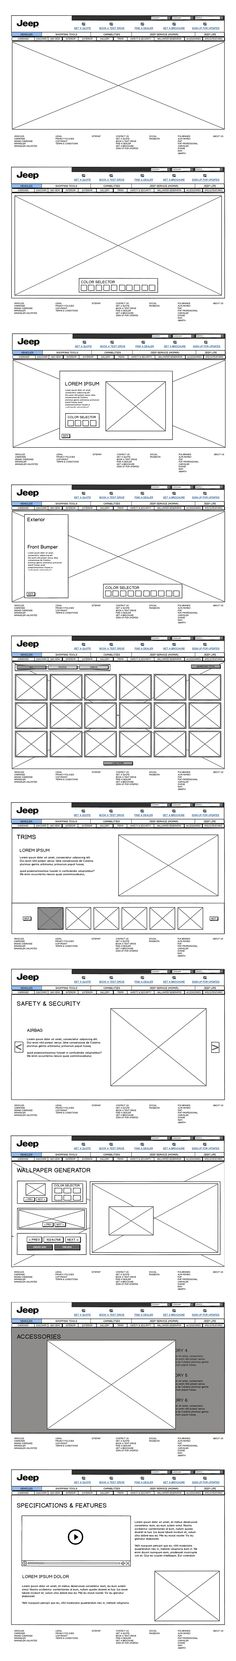 fca-jeep wireframing